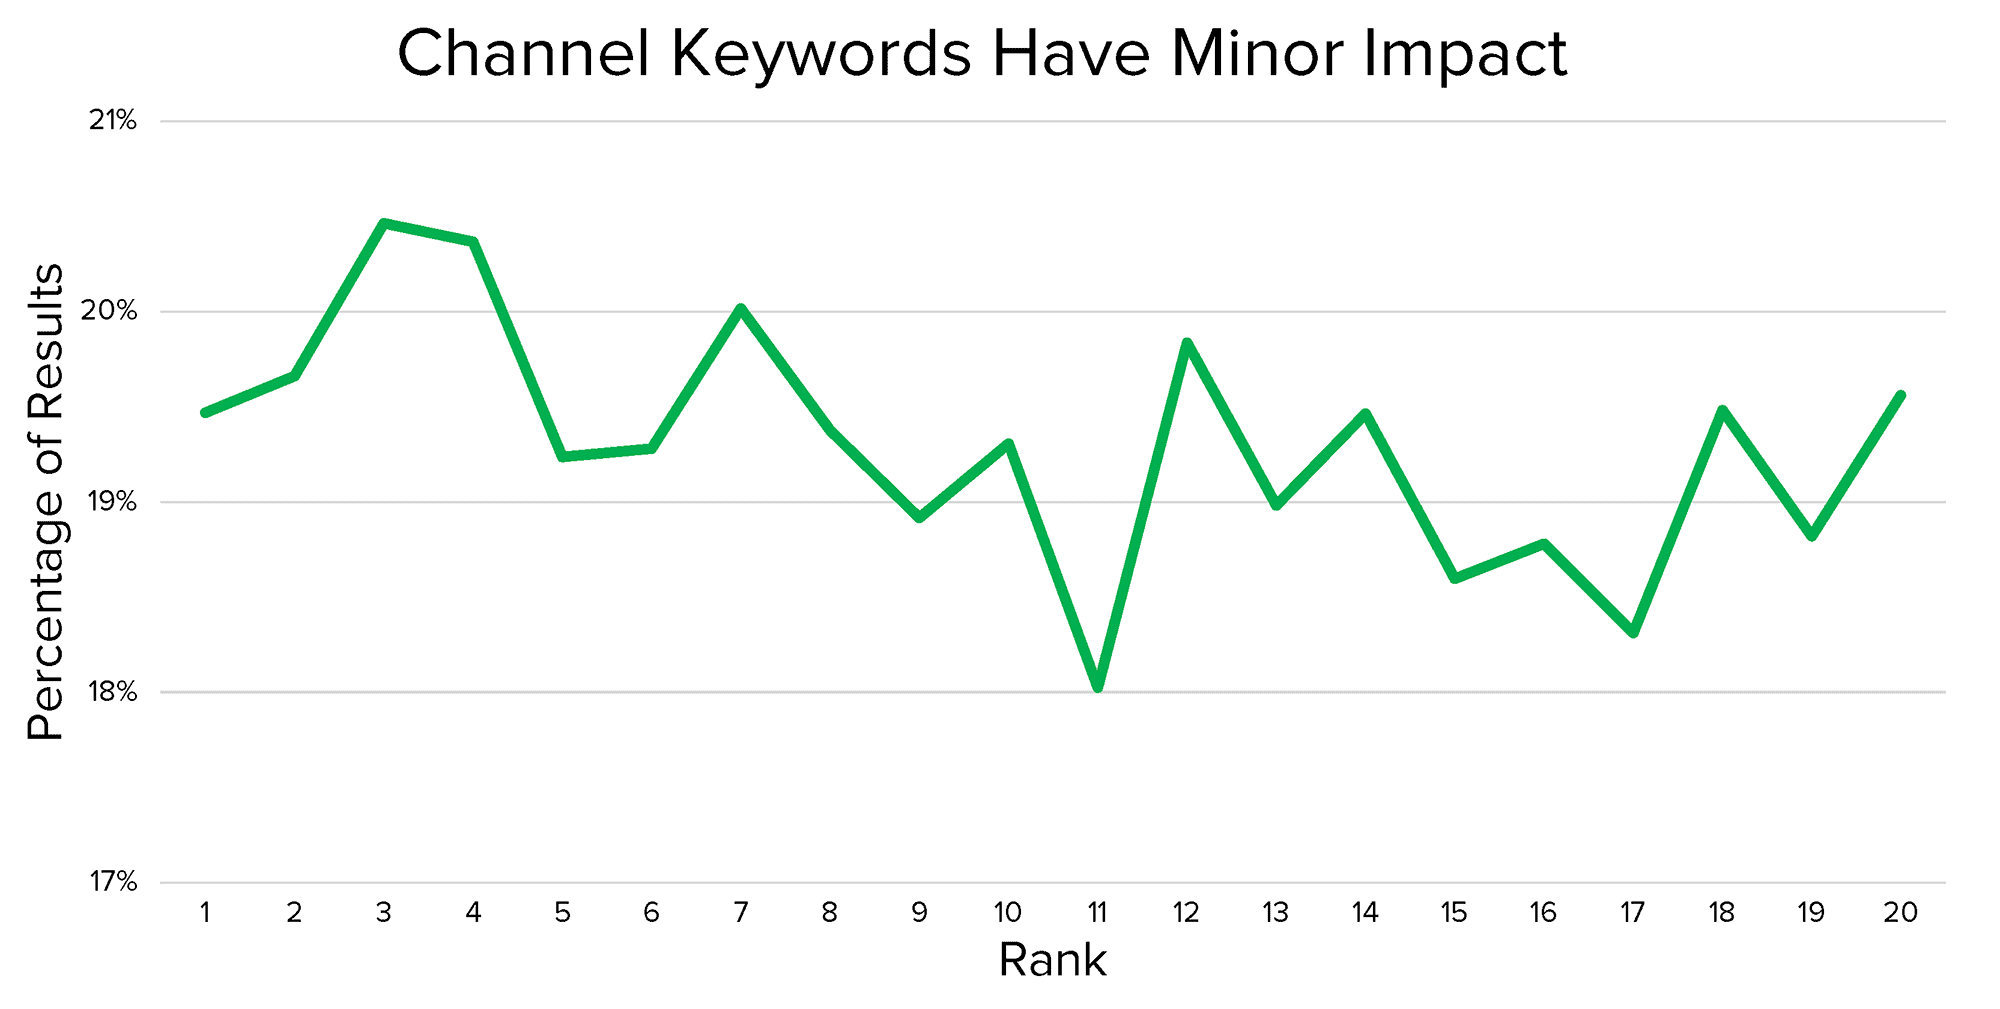 Correlate with rankings